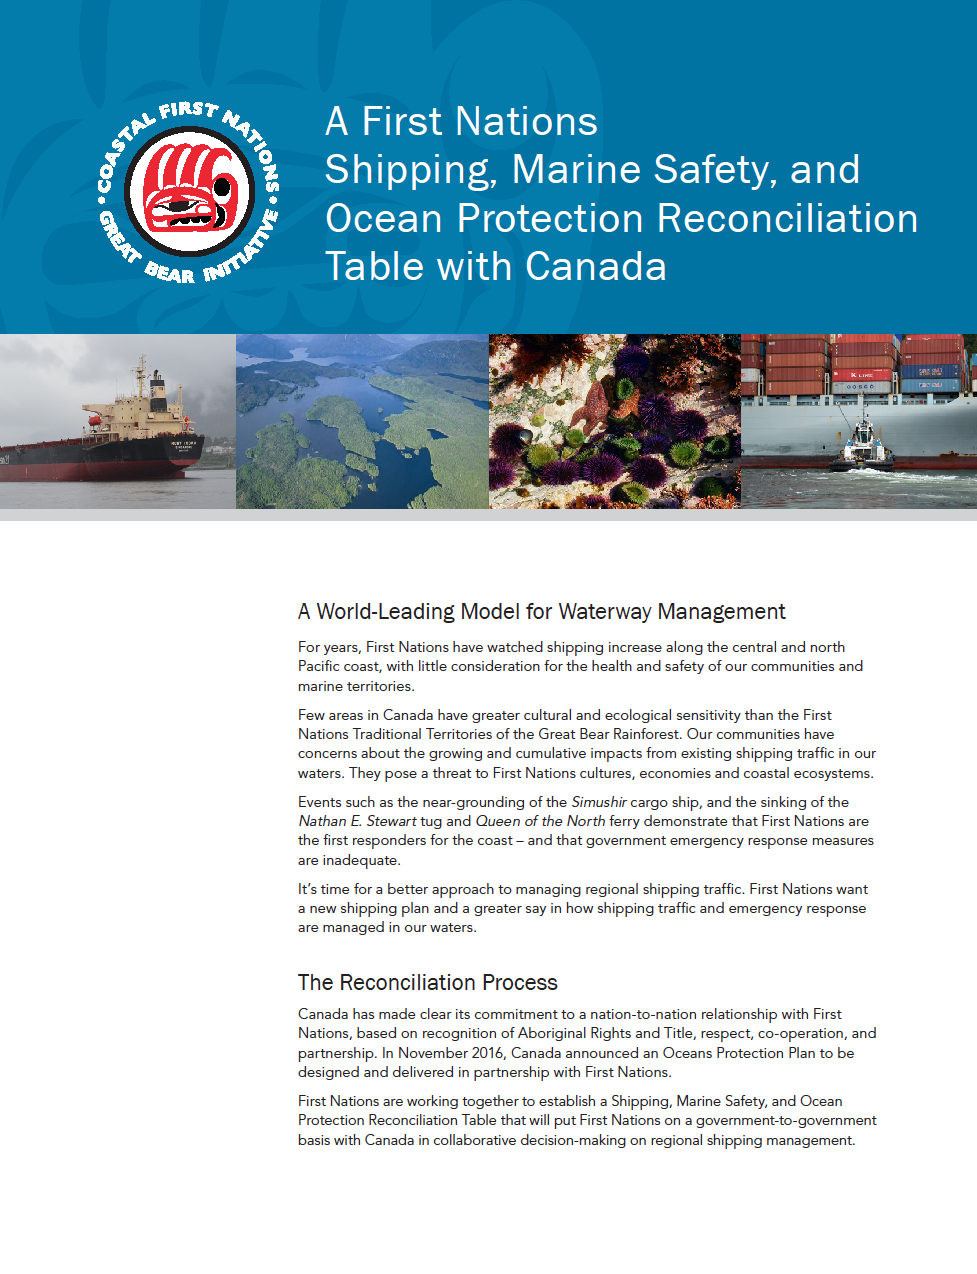 Shipping, Marine Safety, and Ocean Protection Reconciliation Table with Canada